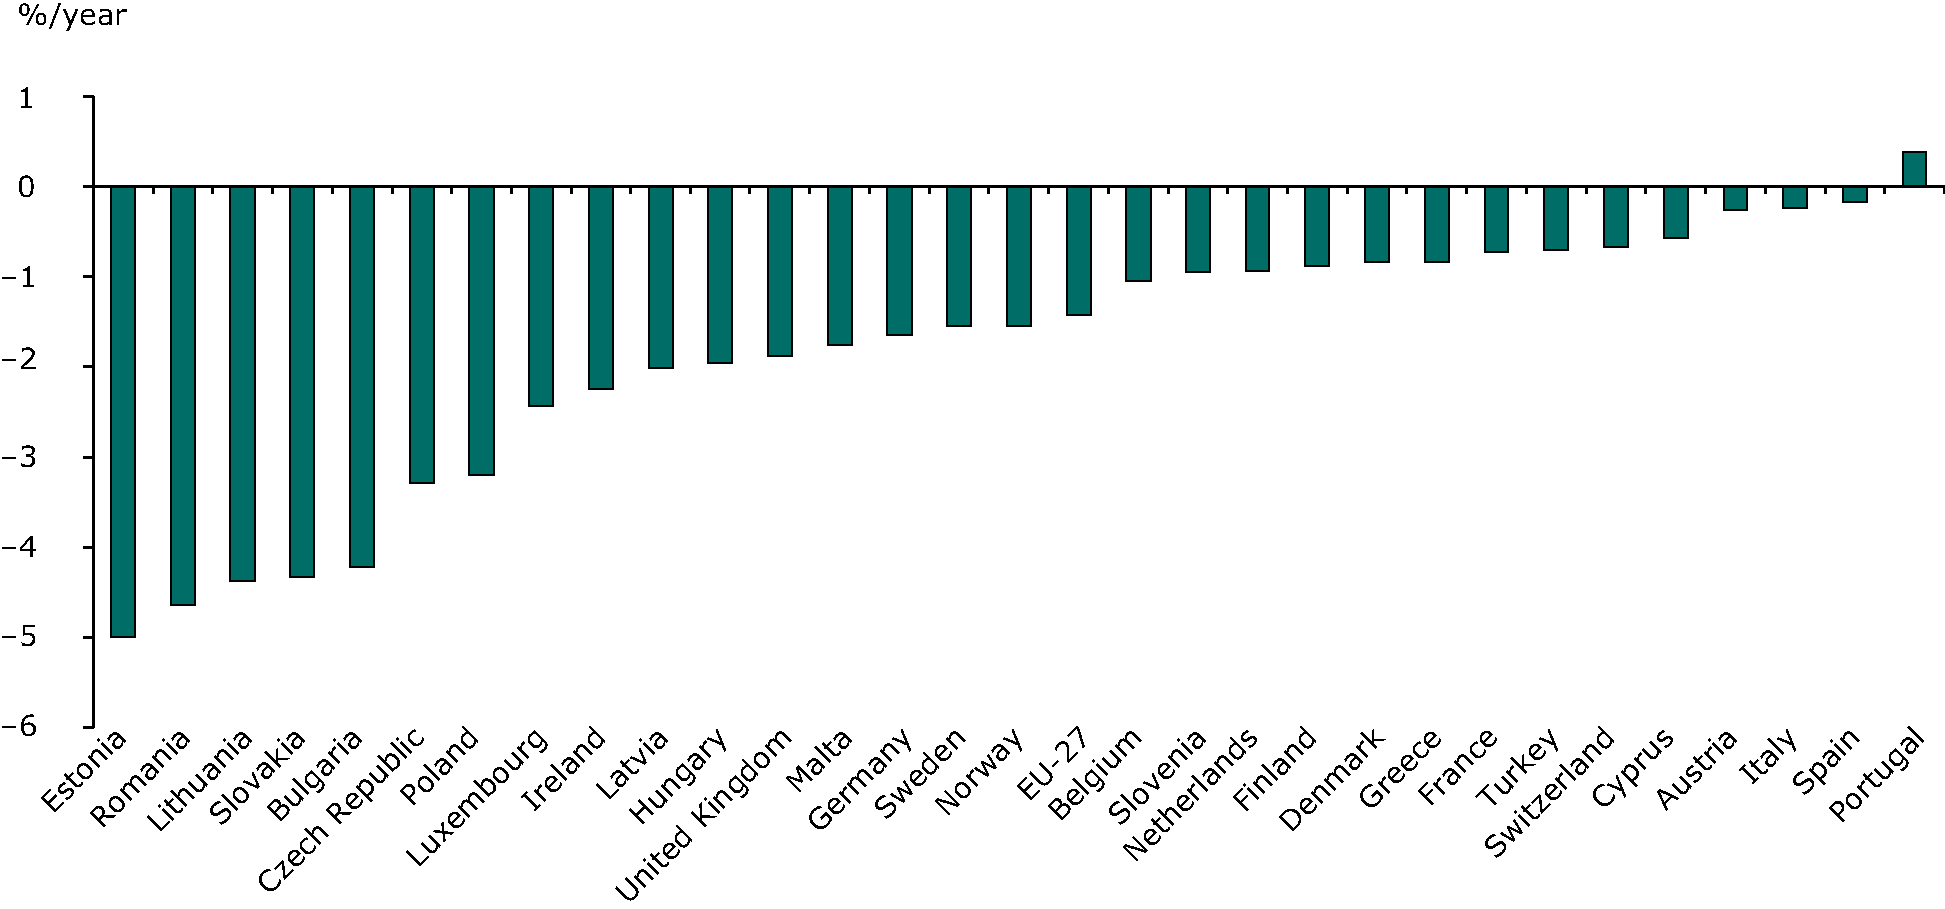 Variation of final energy intensity in EU and EEA countries, 1990-2010